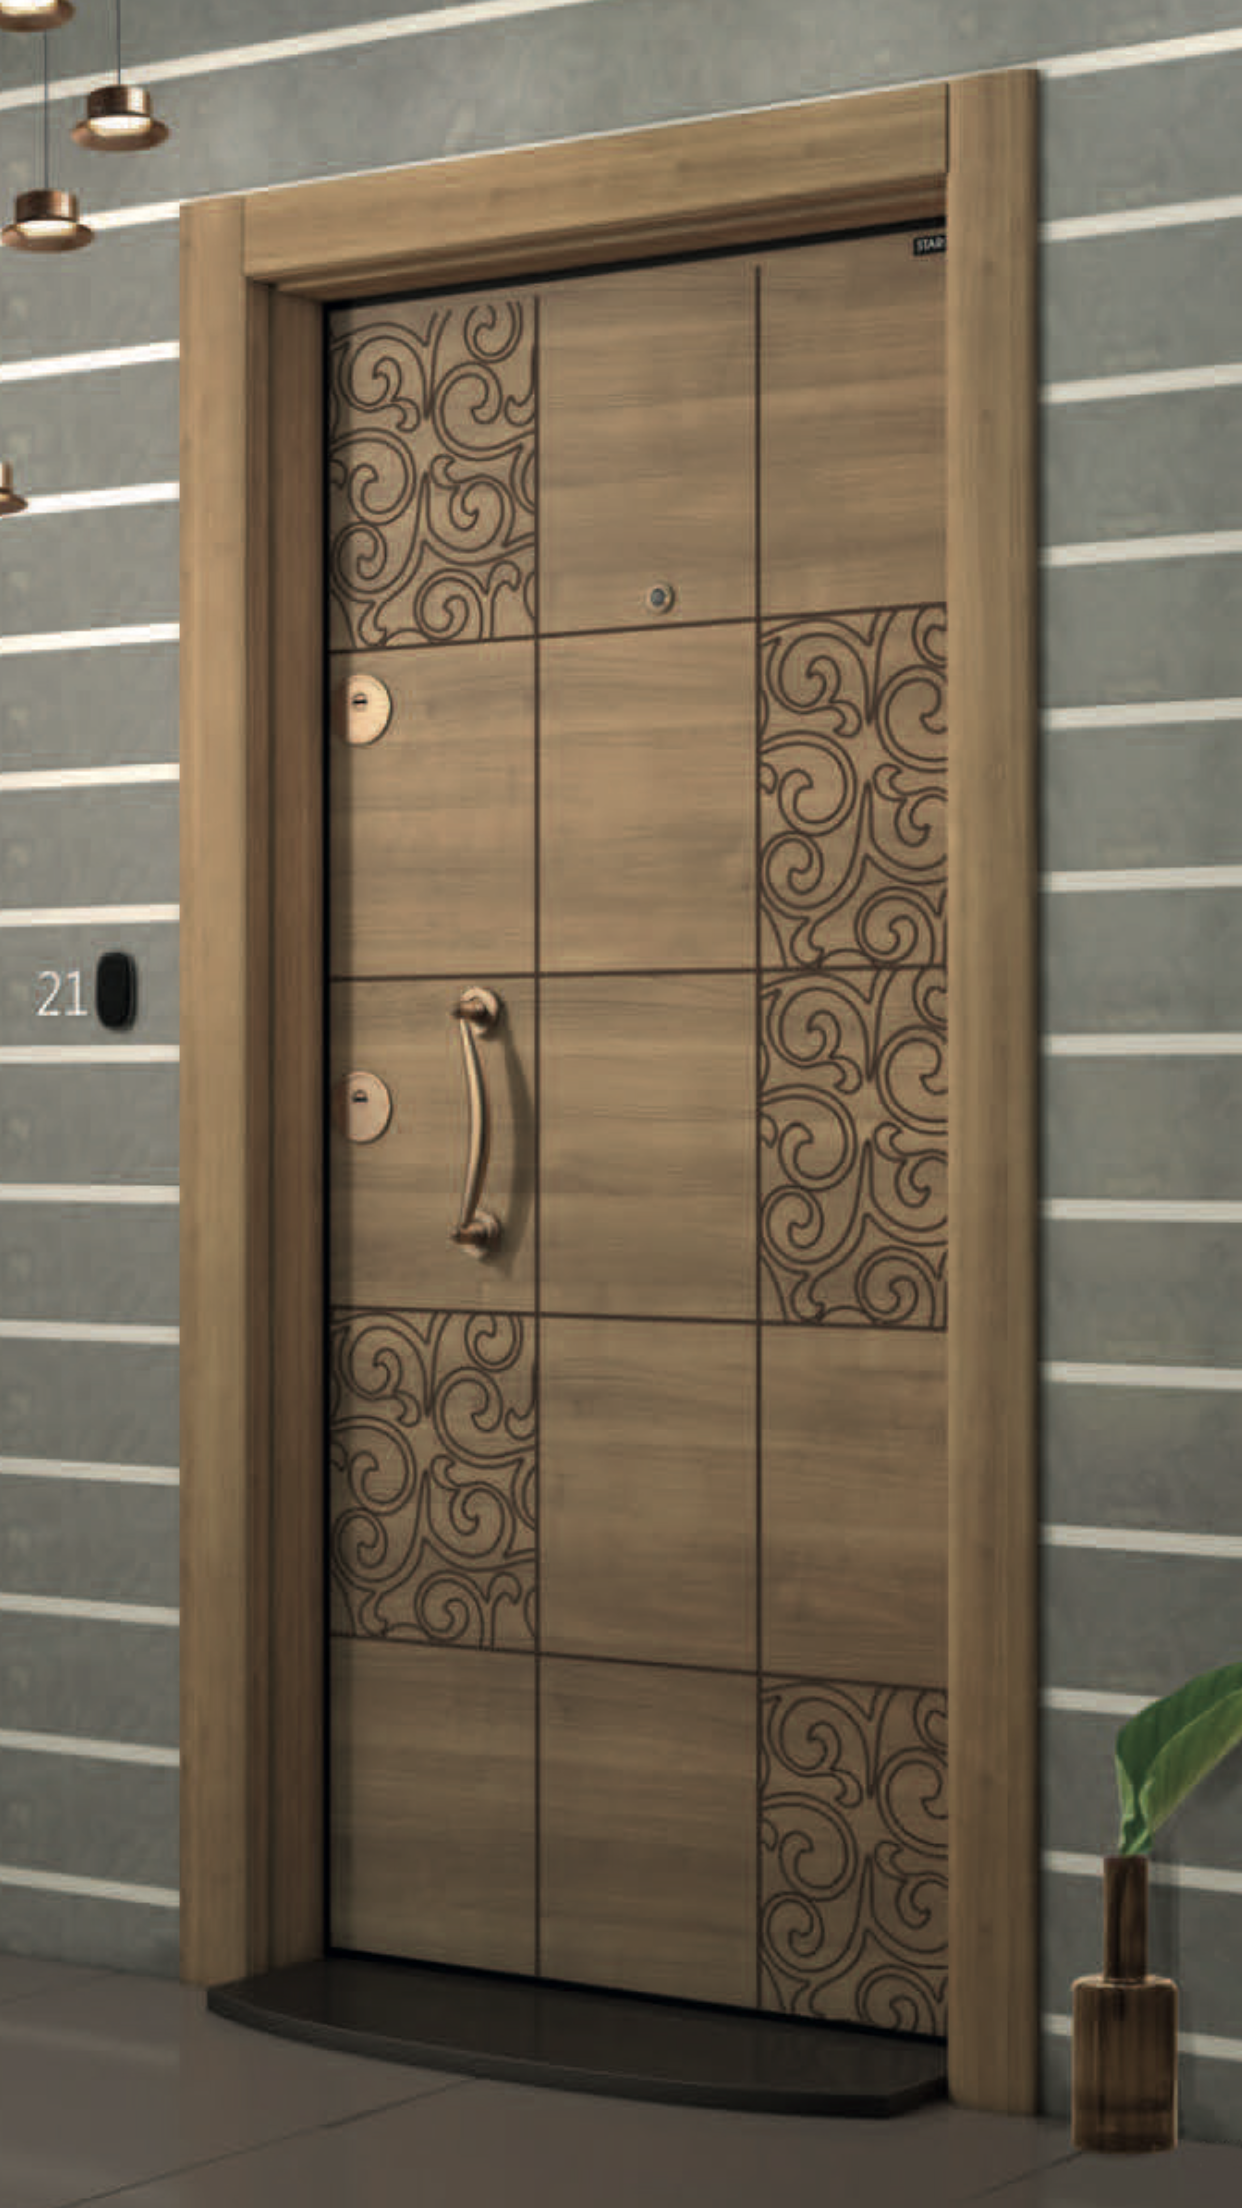 Modern Interior Doors Ideas 14: Door Design Interior, Flush Door Design